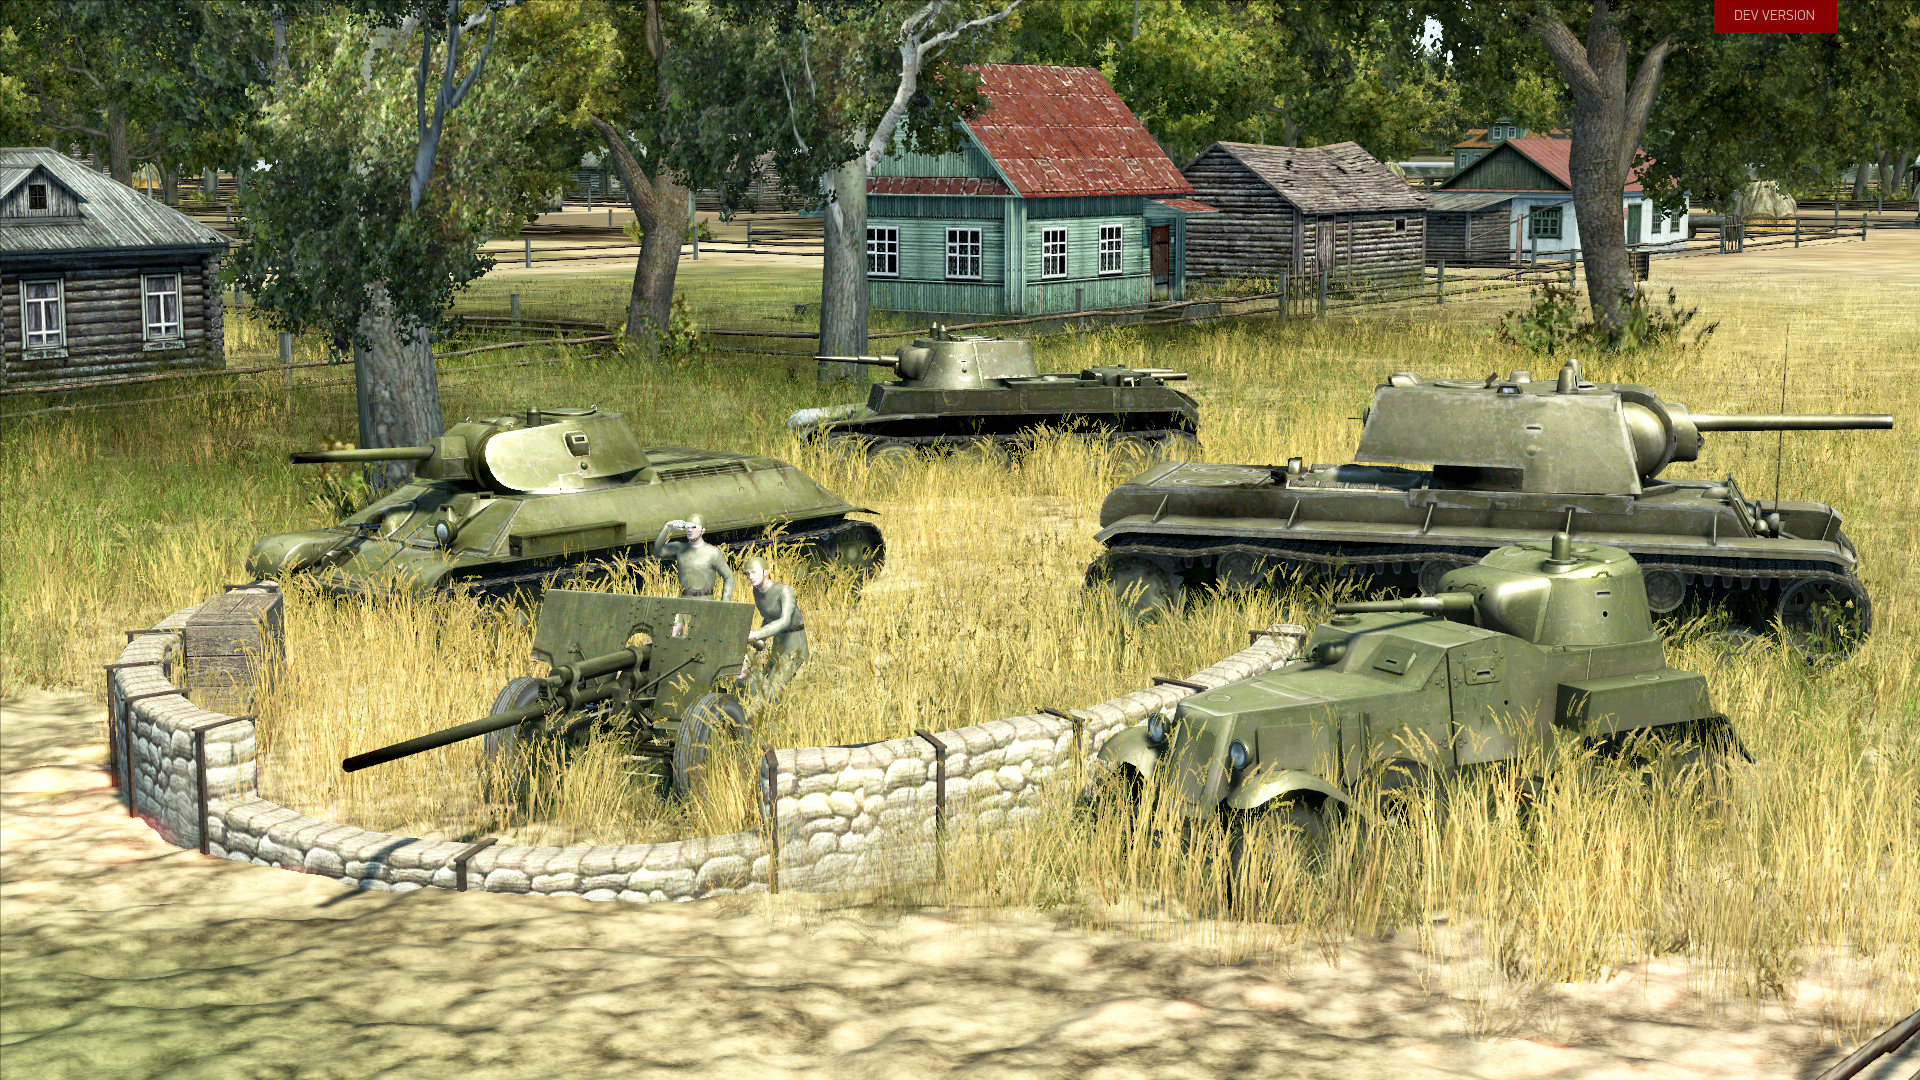 http://forum.il2sturmovik.ru/uploads/monthly_12_2015/post-12-0-40271400-1449747870.jpg